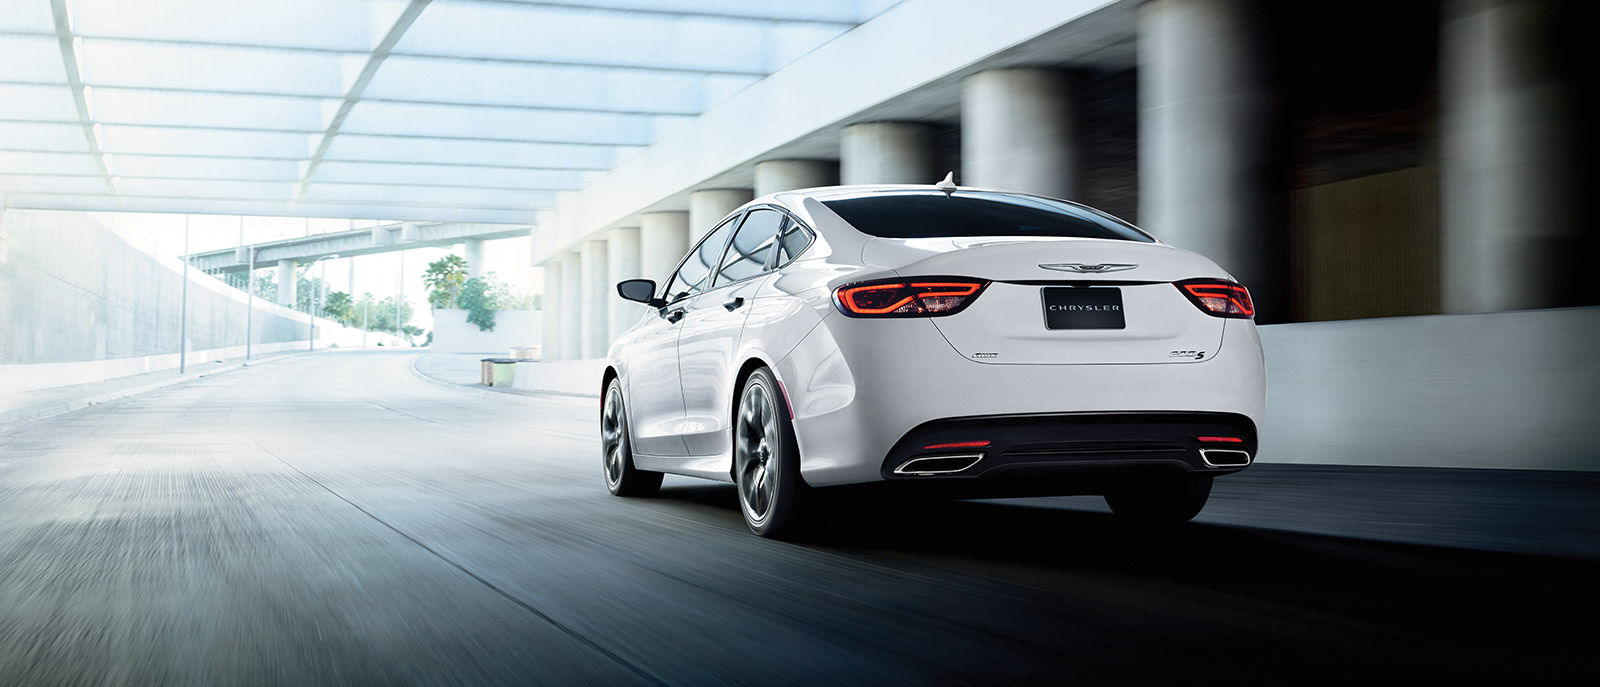 2016 Chrysler 200 Rear